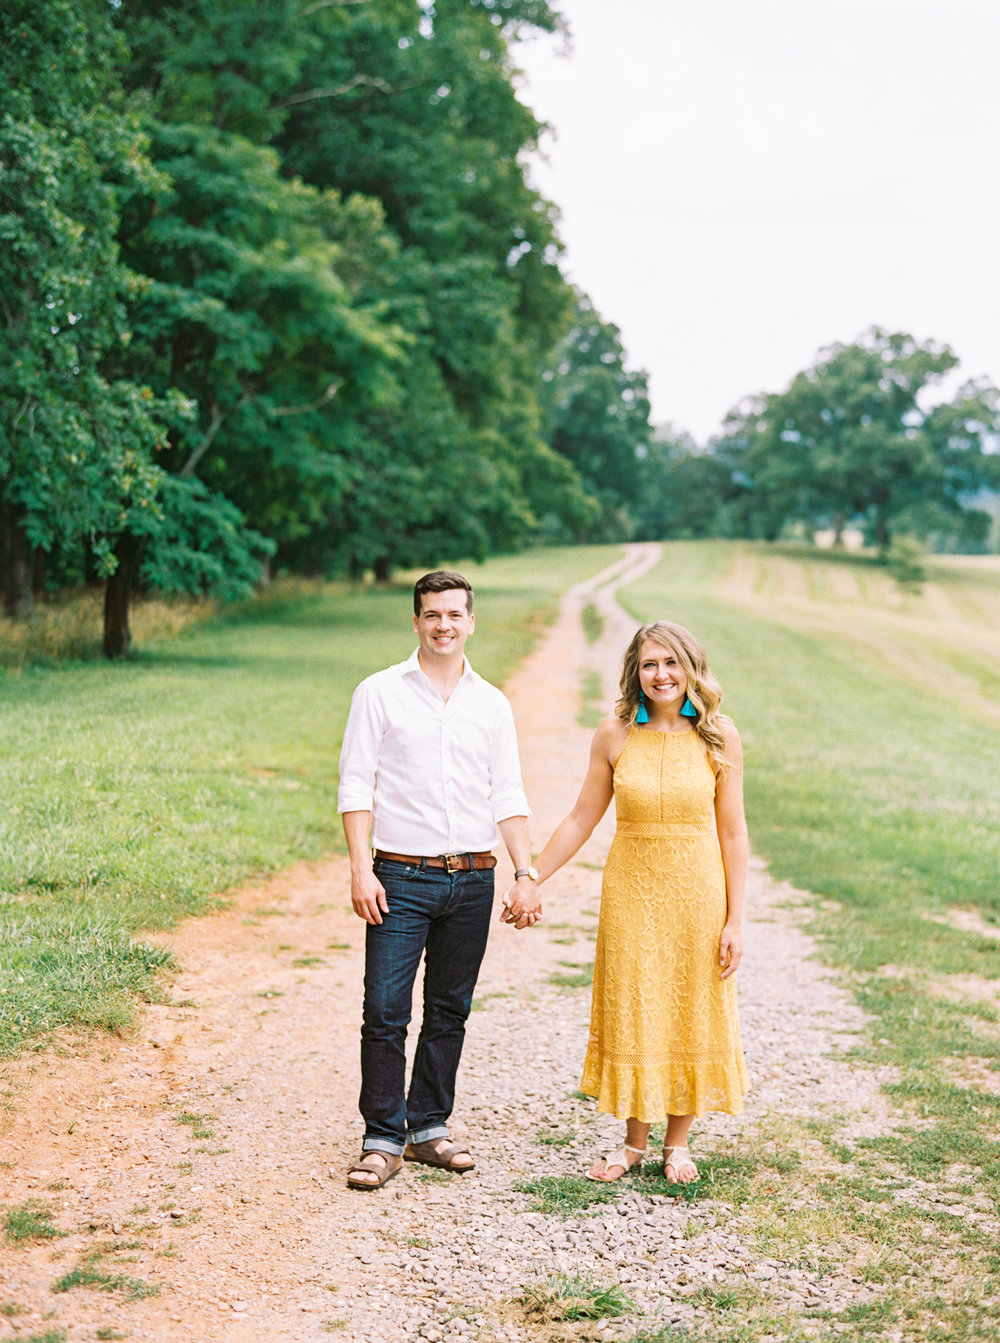 Biltmore-Estate-Engagment-Session-in-Asheville-NC-28.jpg